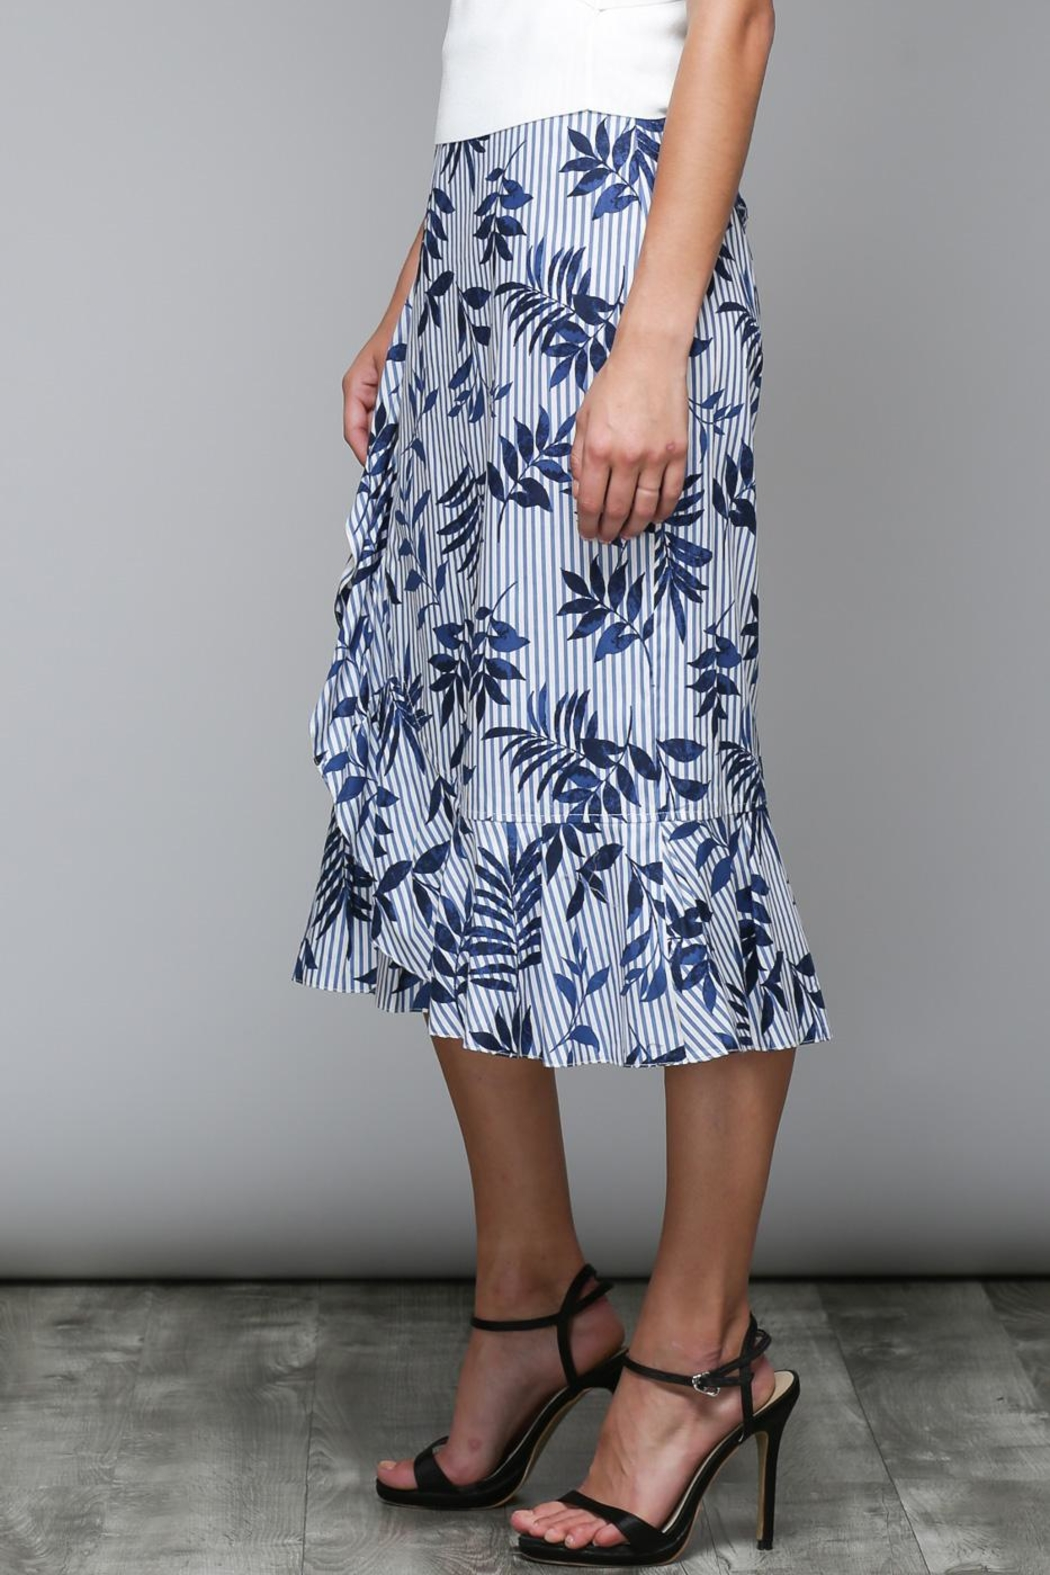 Do & Be Stripe Floral Skirt - Side Cropped Image